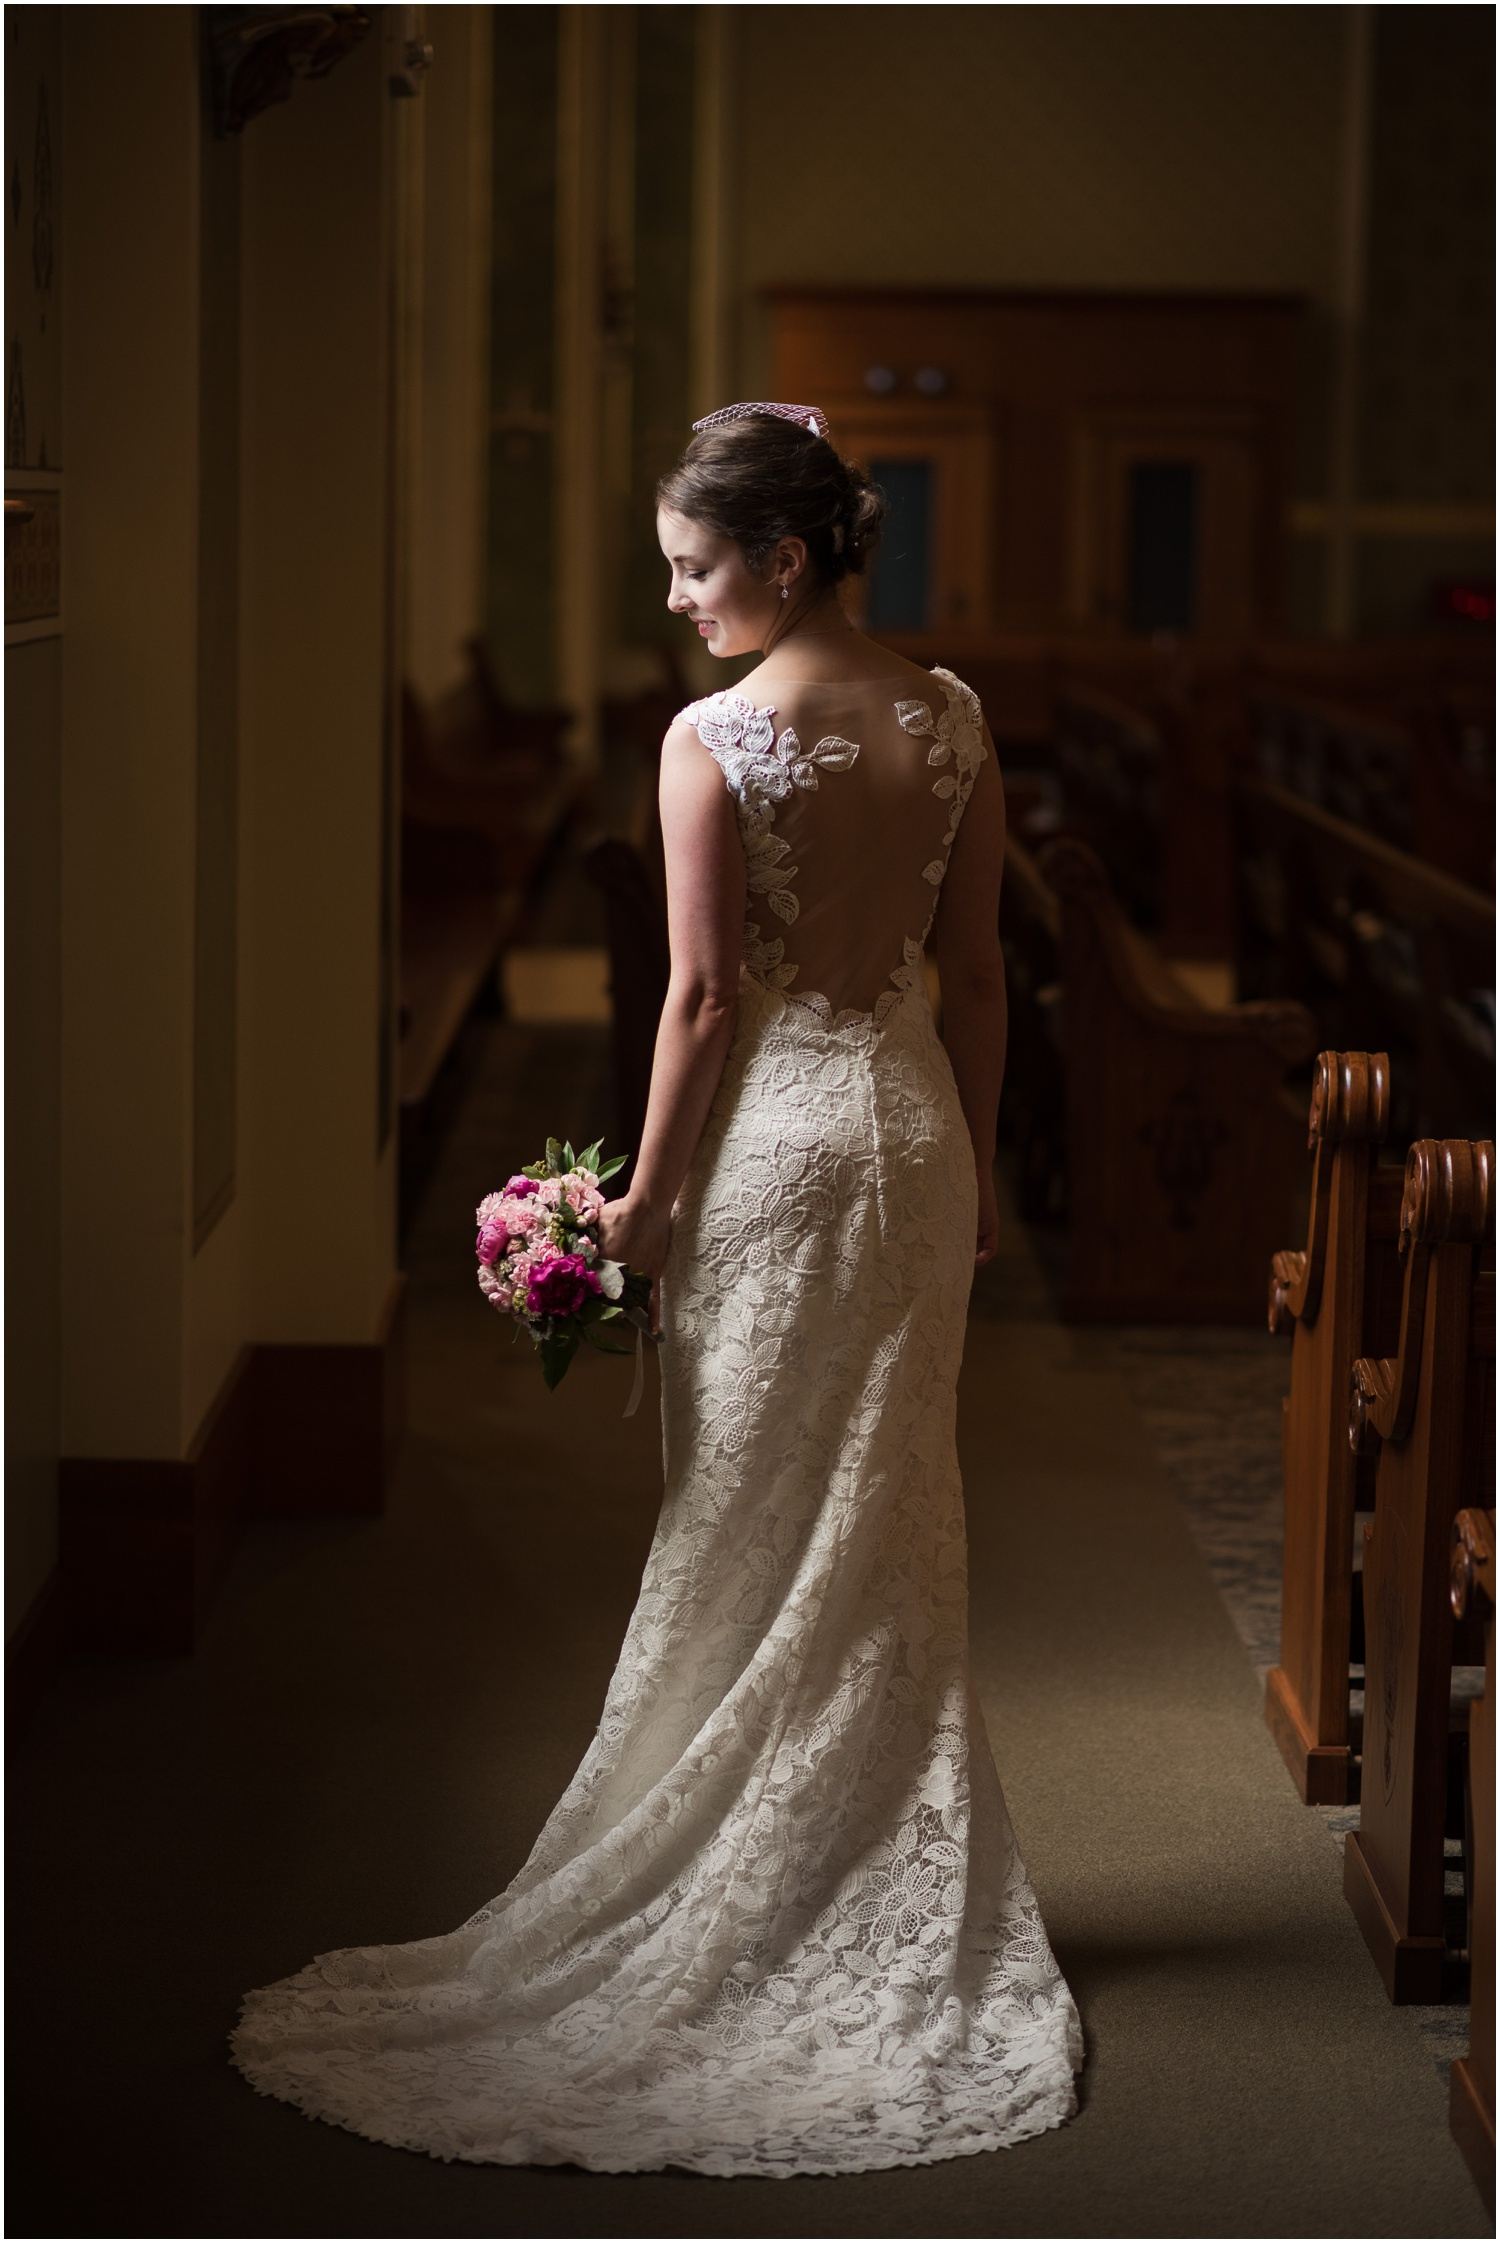 WISCONSIN DELLS WEDDING PHOTOGRAPHER | ST. CECILIA CATHOLIC CHURCH | WISCONSIN DELLS, WI | WEDDING_0250.jpg